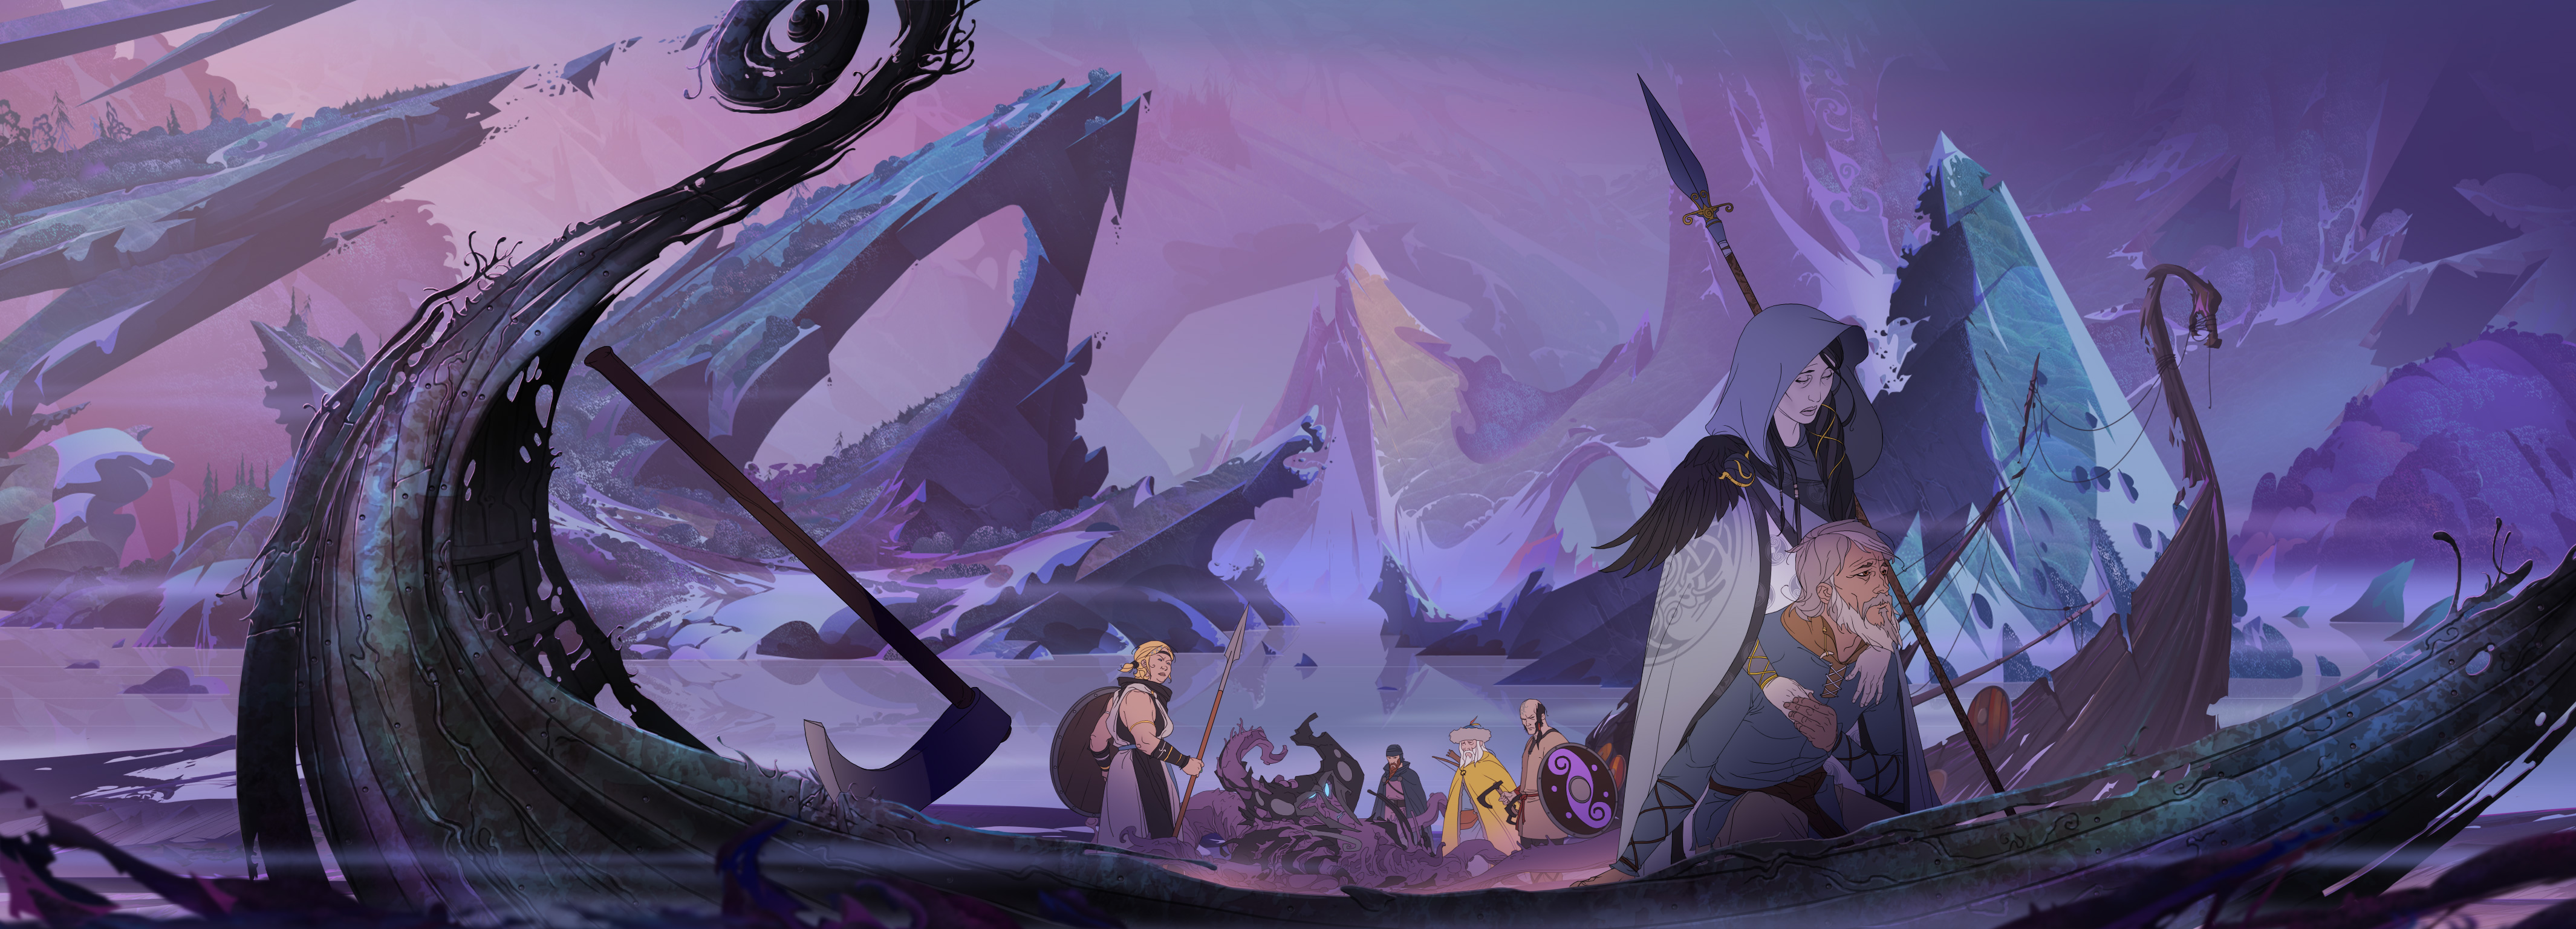 1366x768 The Banner Saga 3 4k 1366x768 Resolution Hd 4k Wallpapers Images Backgrounds Photos And Pictures